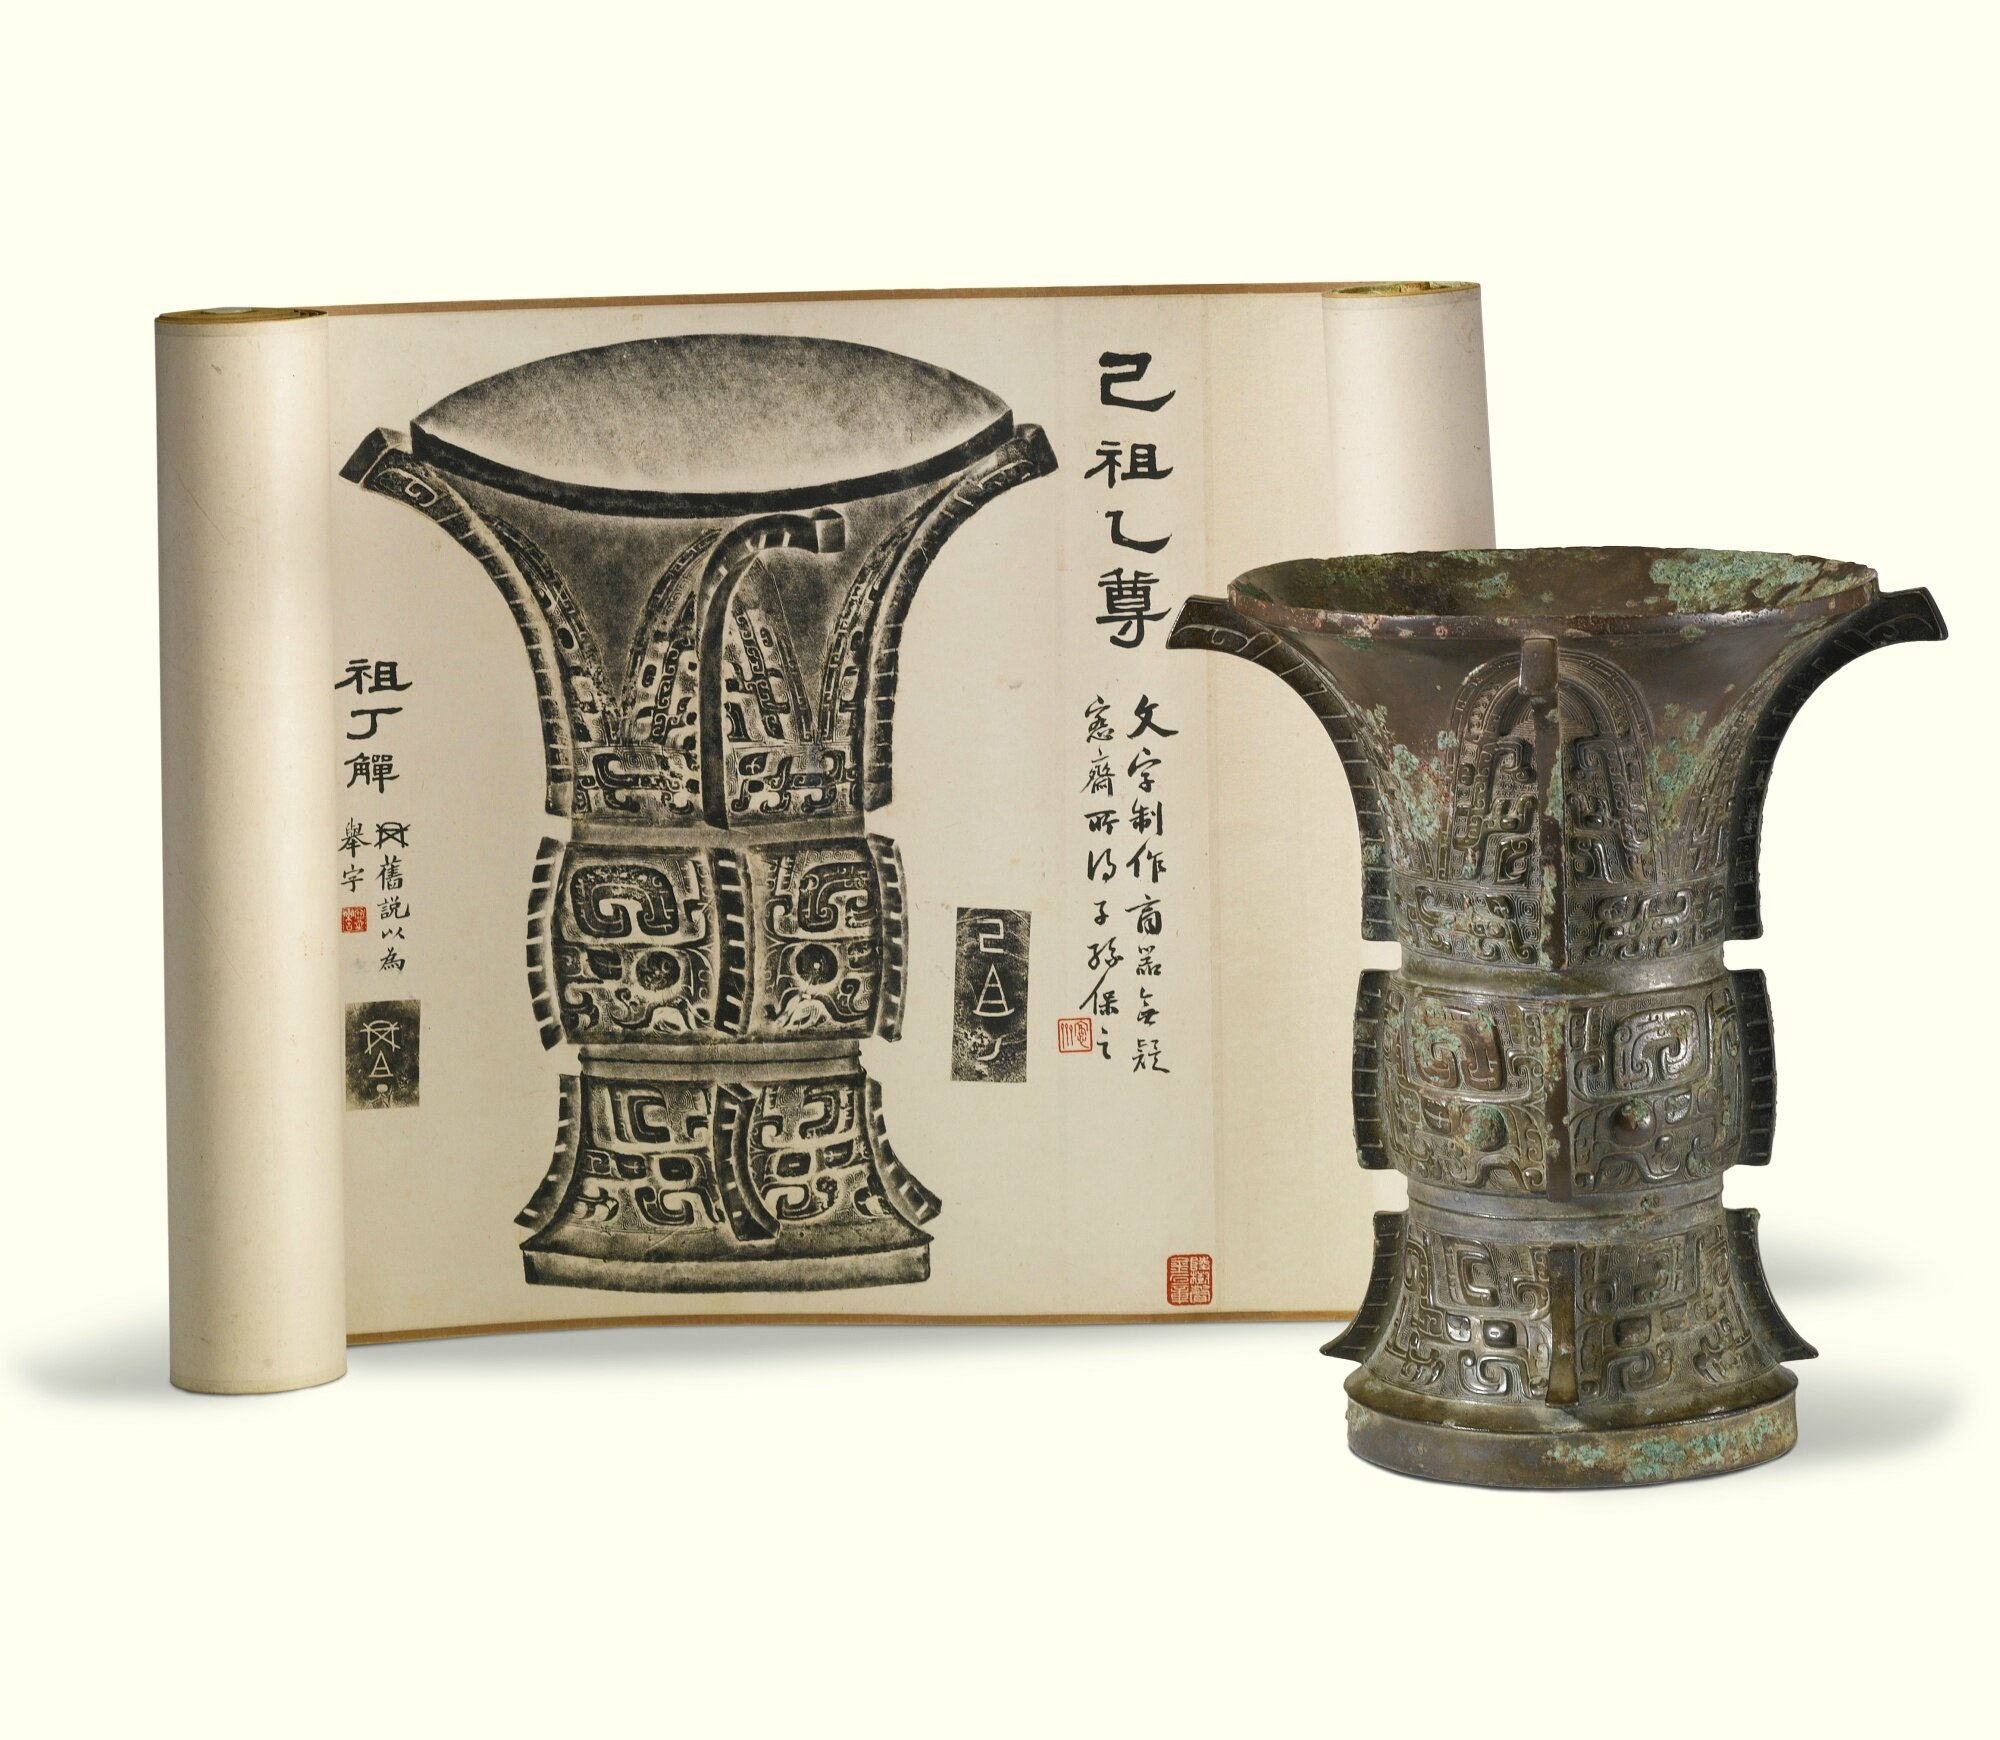 A Superb And Important Bronze Ritual Wine Vessel, Late Shang Dynasty, 13th-11th Century BC